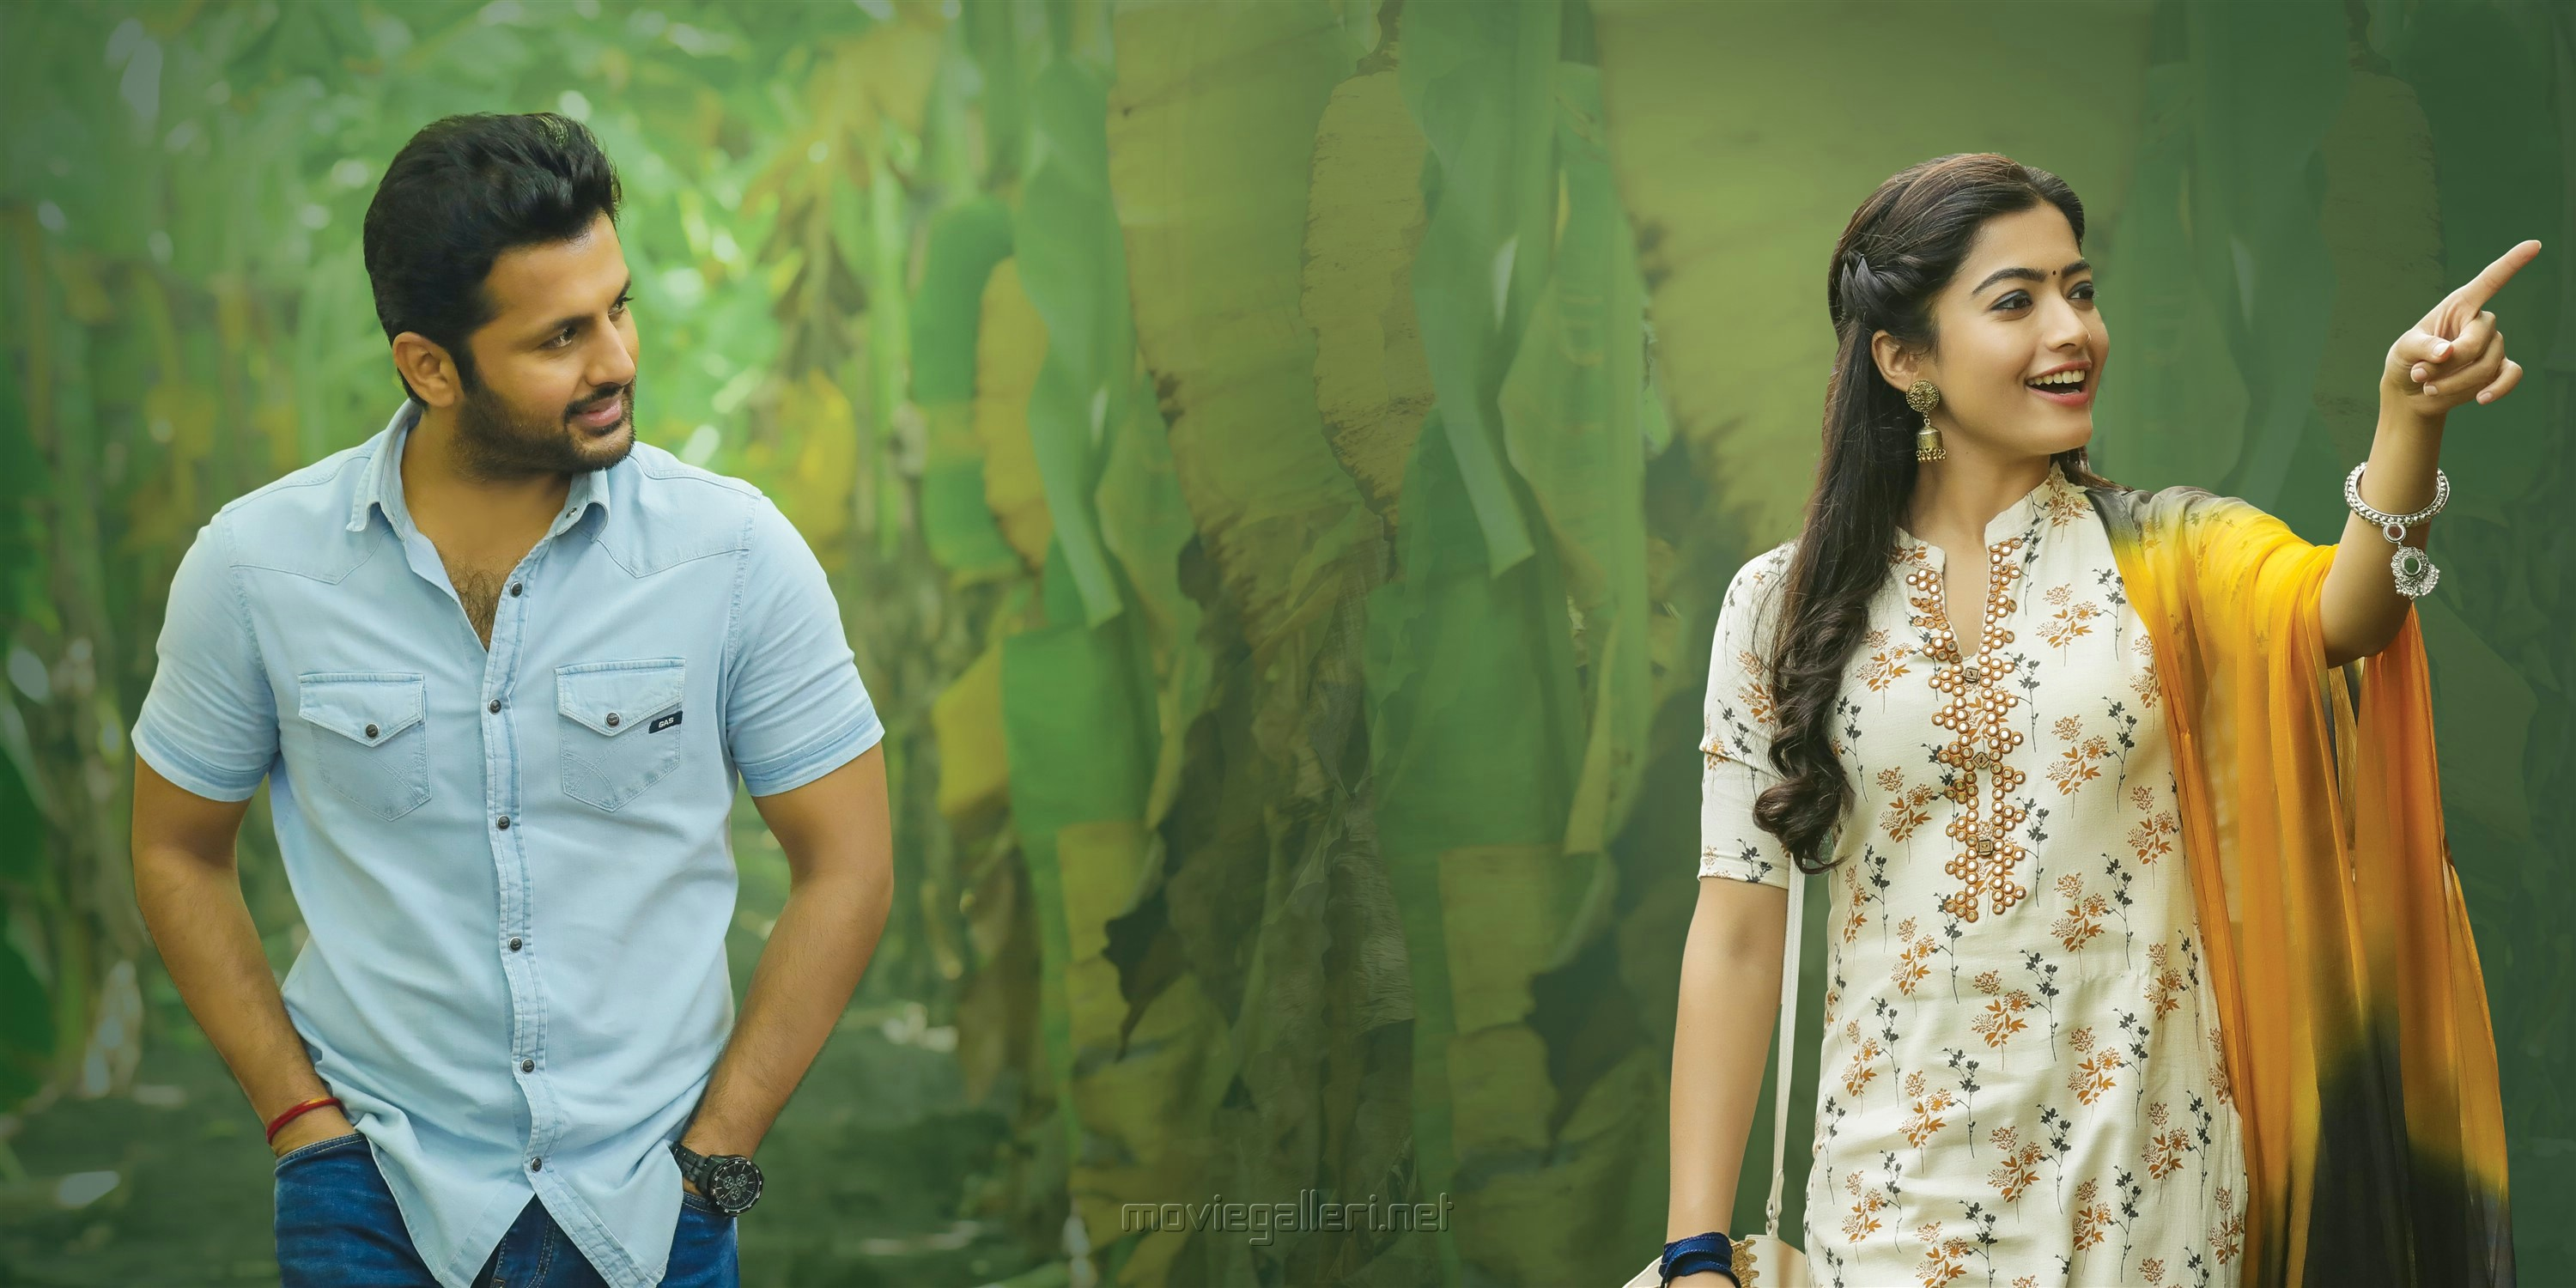 Bheeshma Movie Images Hd Nithin Rashmika Mandanna New Movie Posters